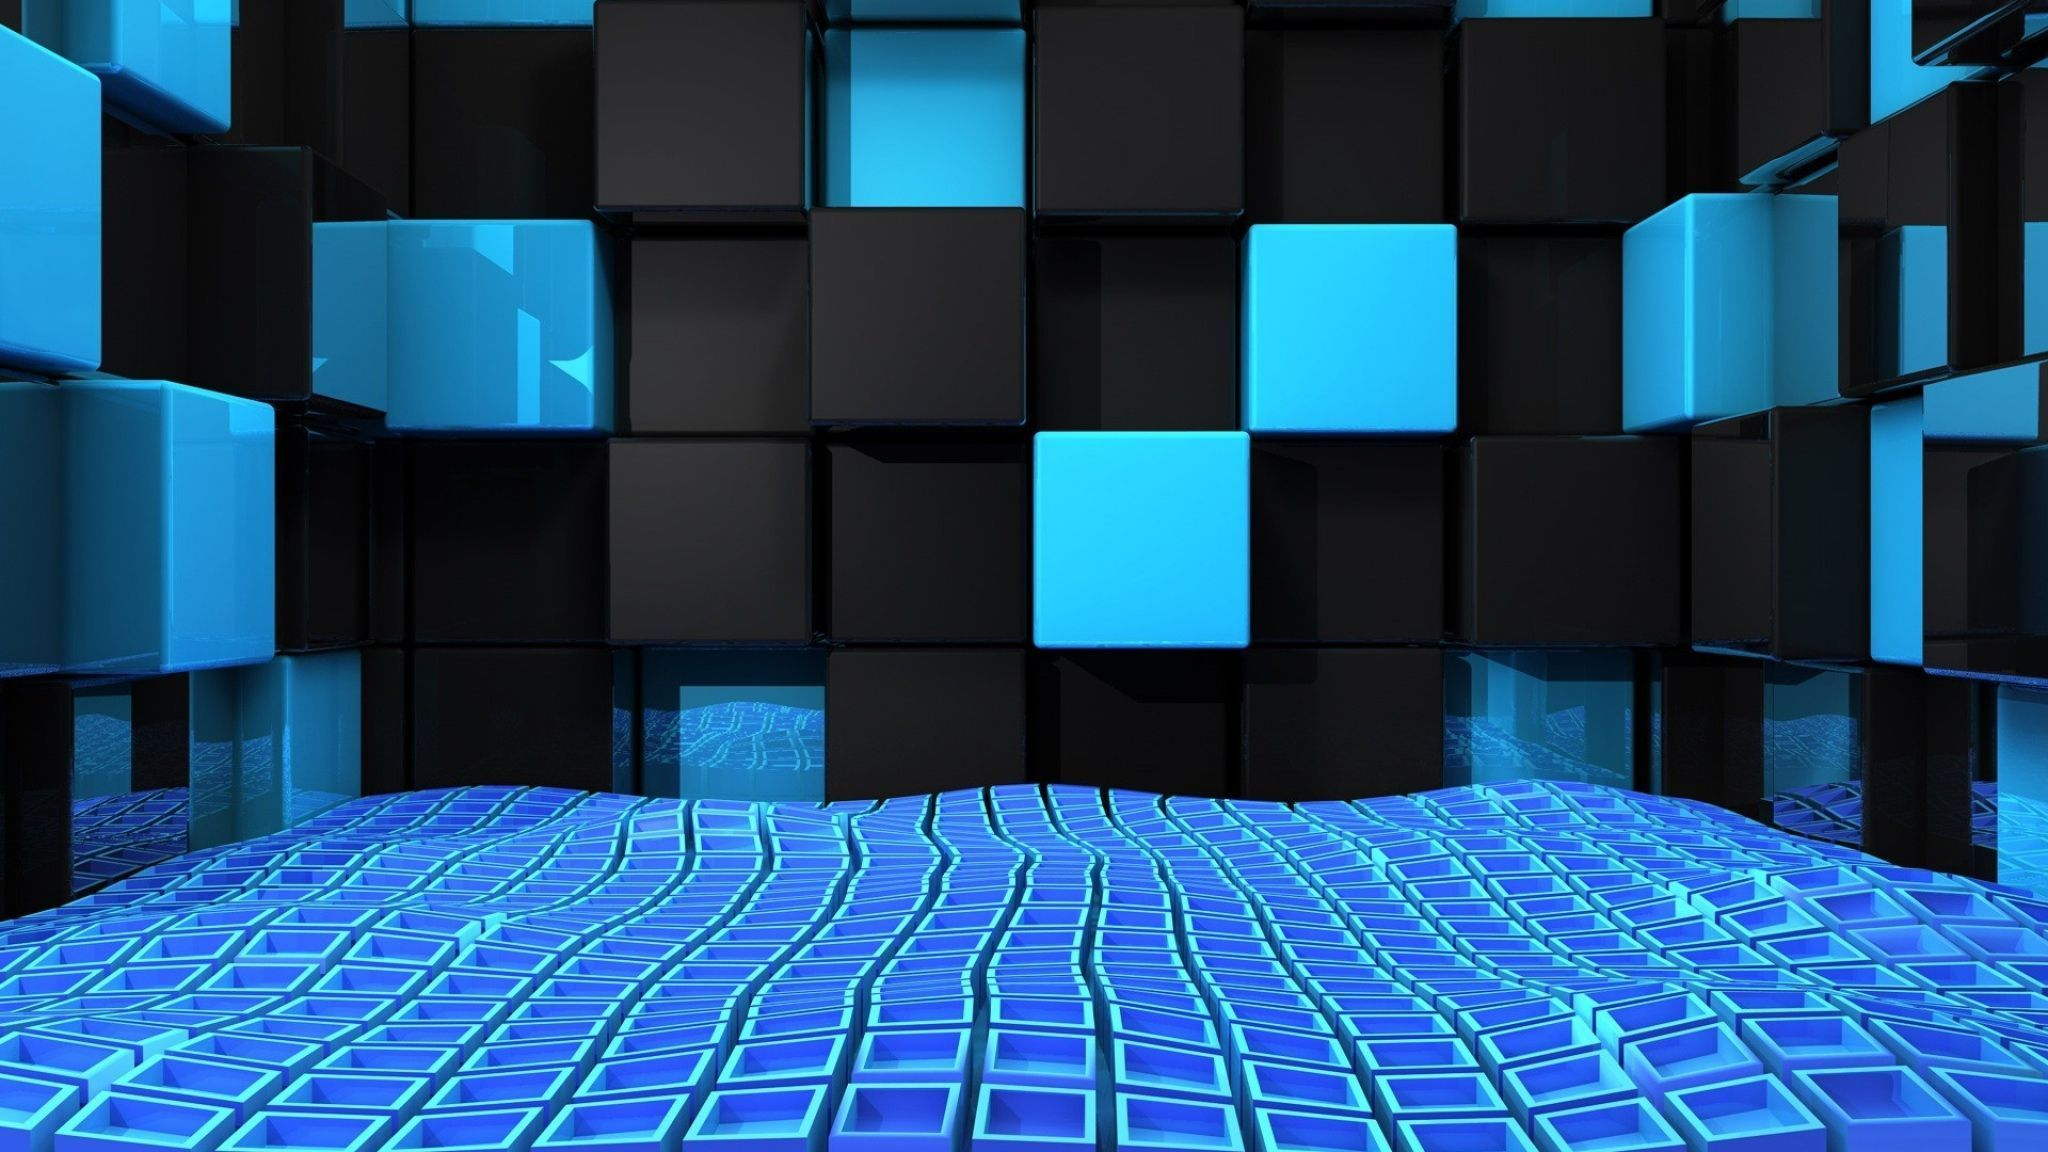 Blue And Black Wallpaper 36 2048x1152